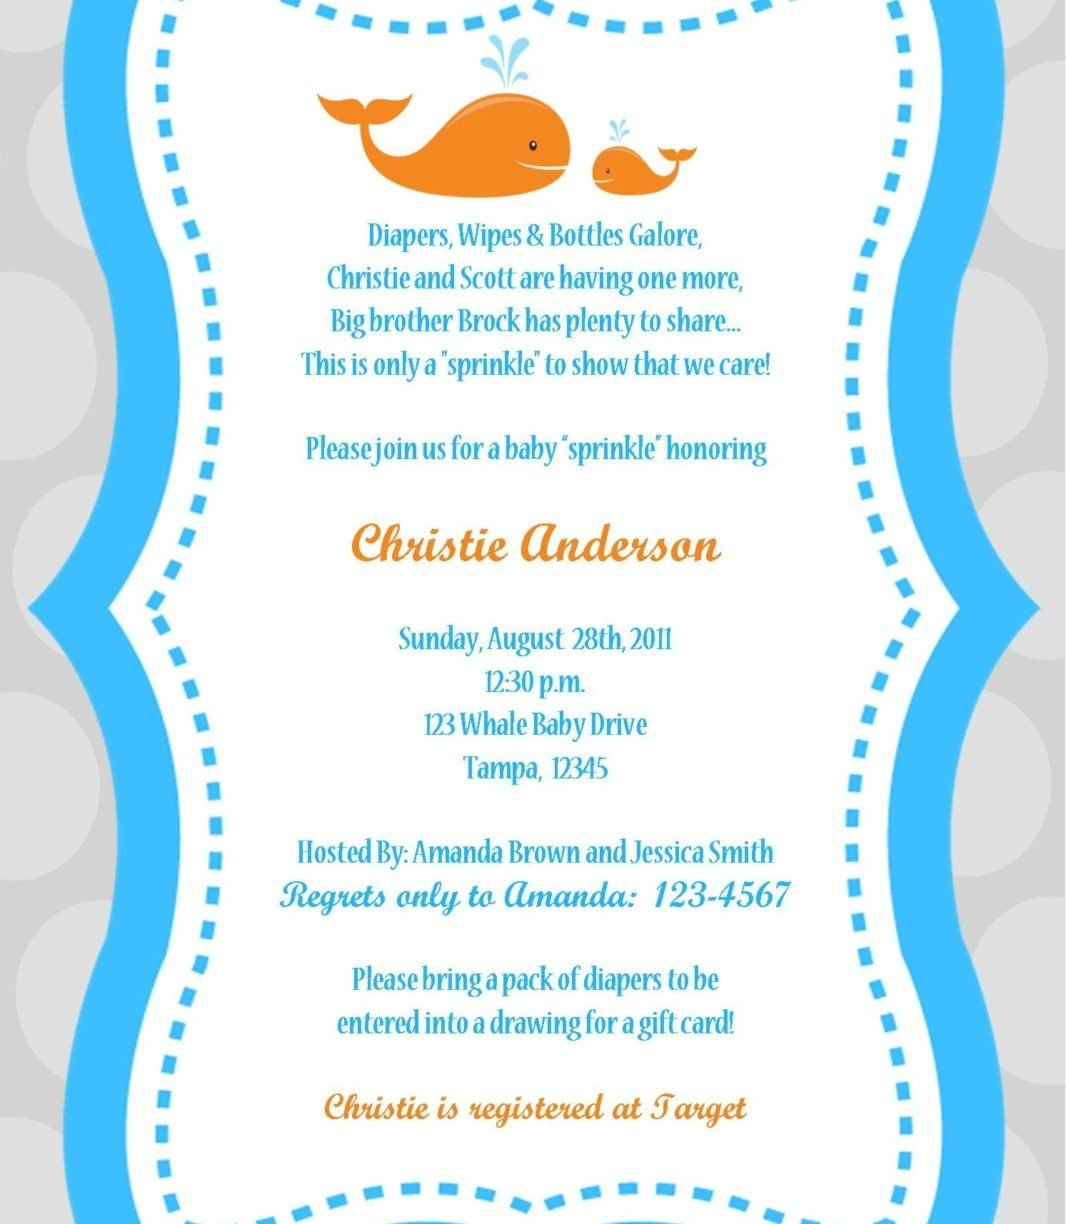 10 Lovable Boy Baby Shower Invitations Wording Ideas baby shower invitation wording twins boy girl for template free 2021